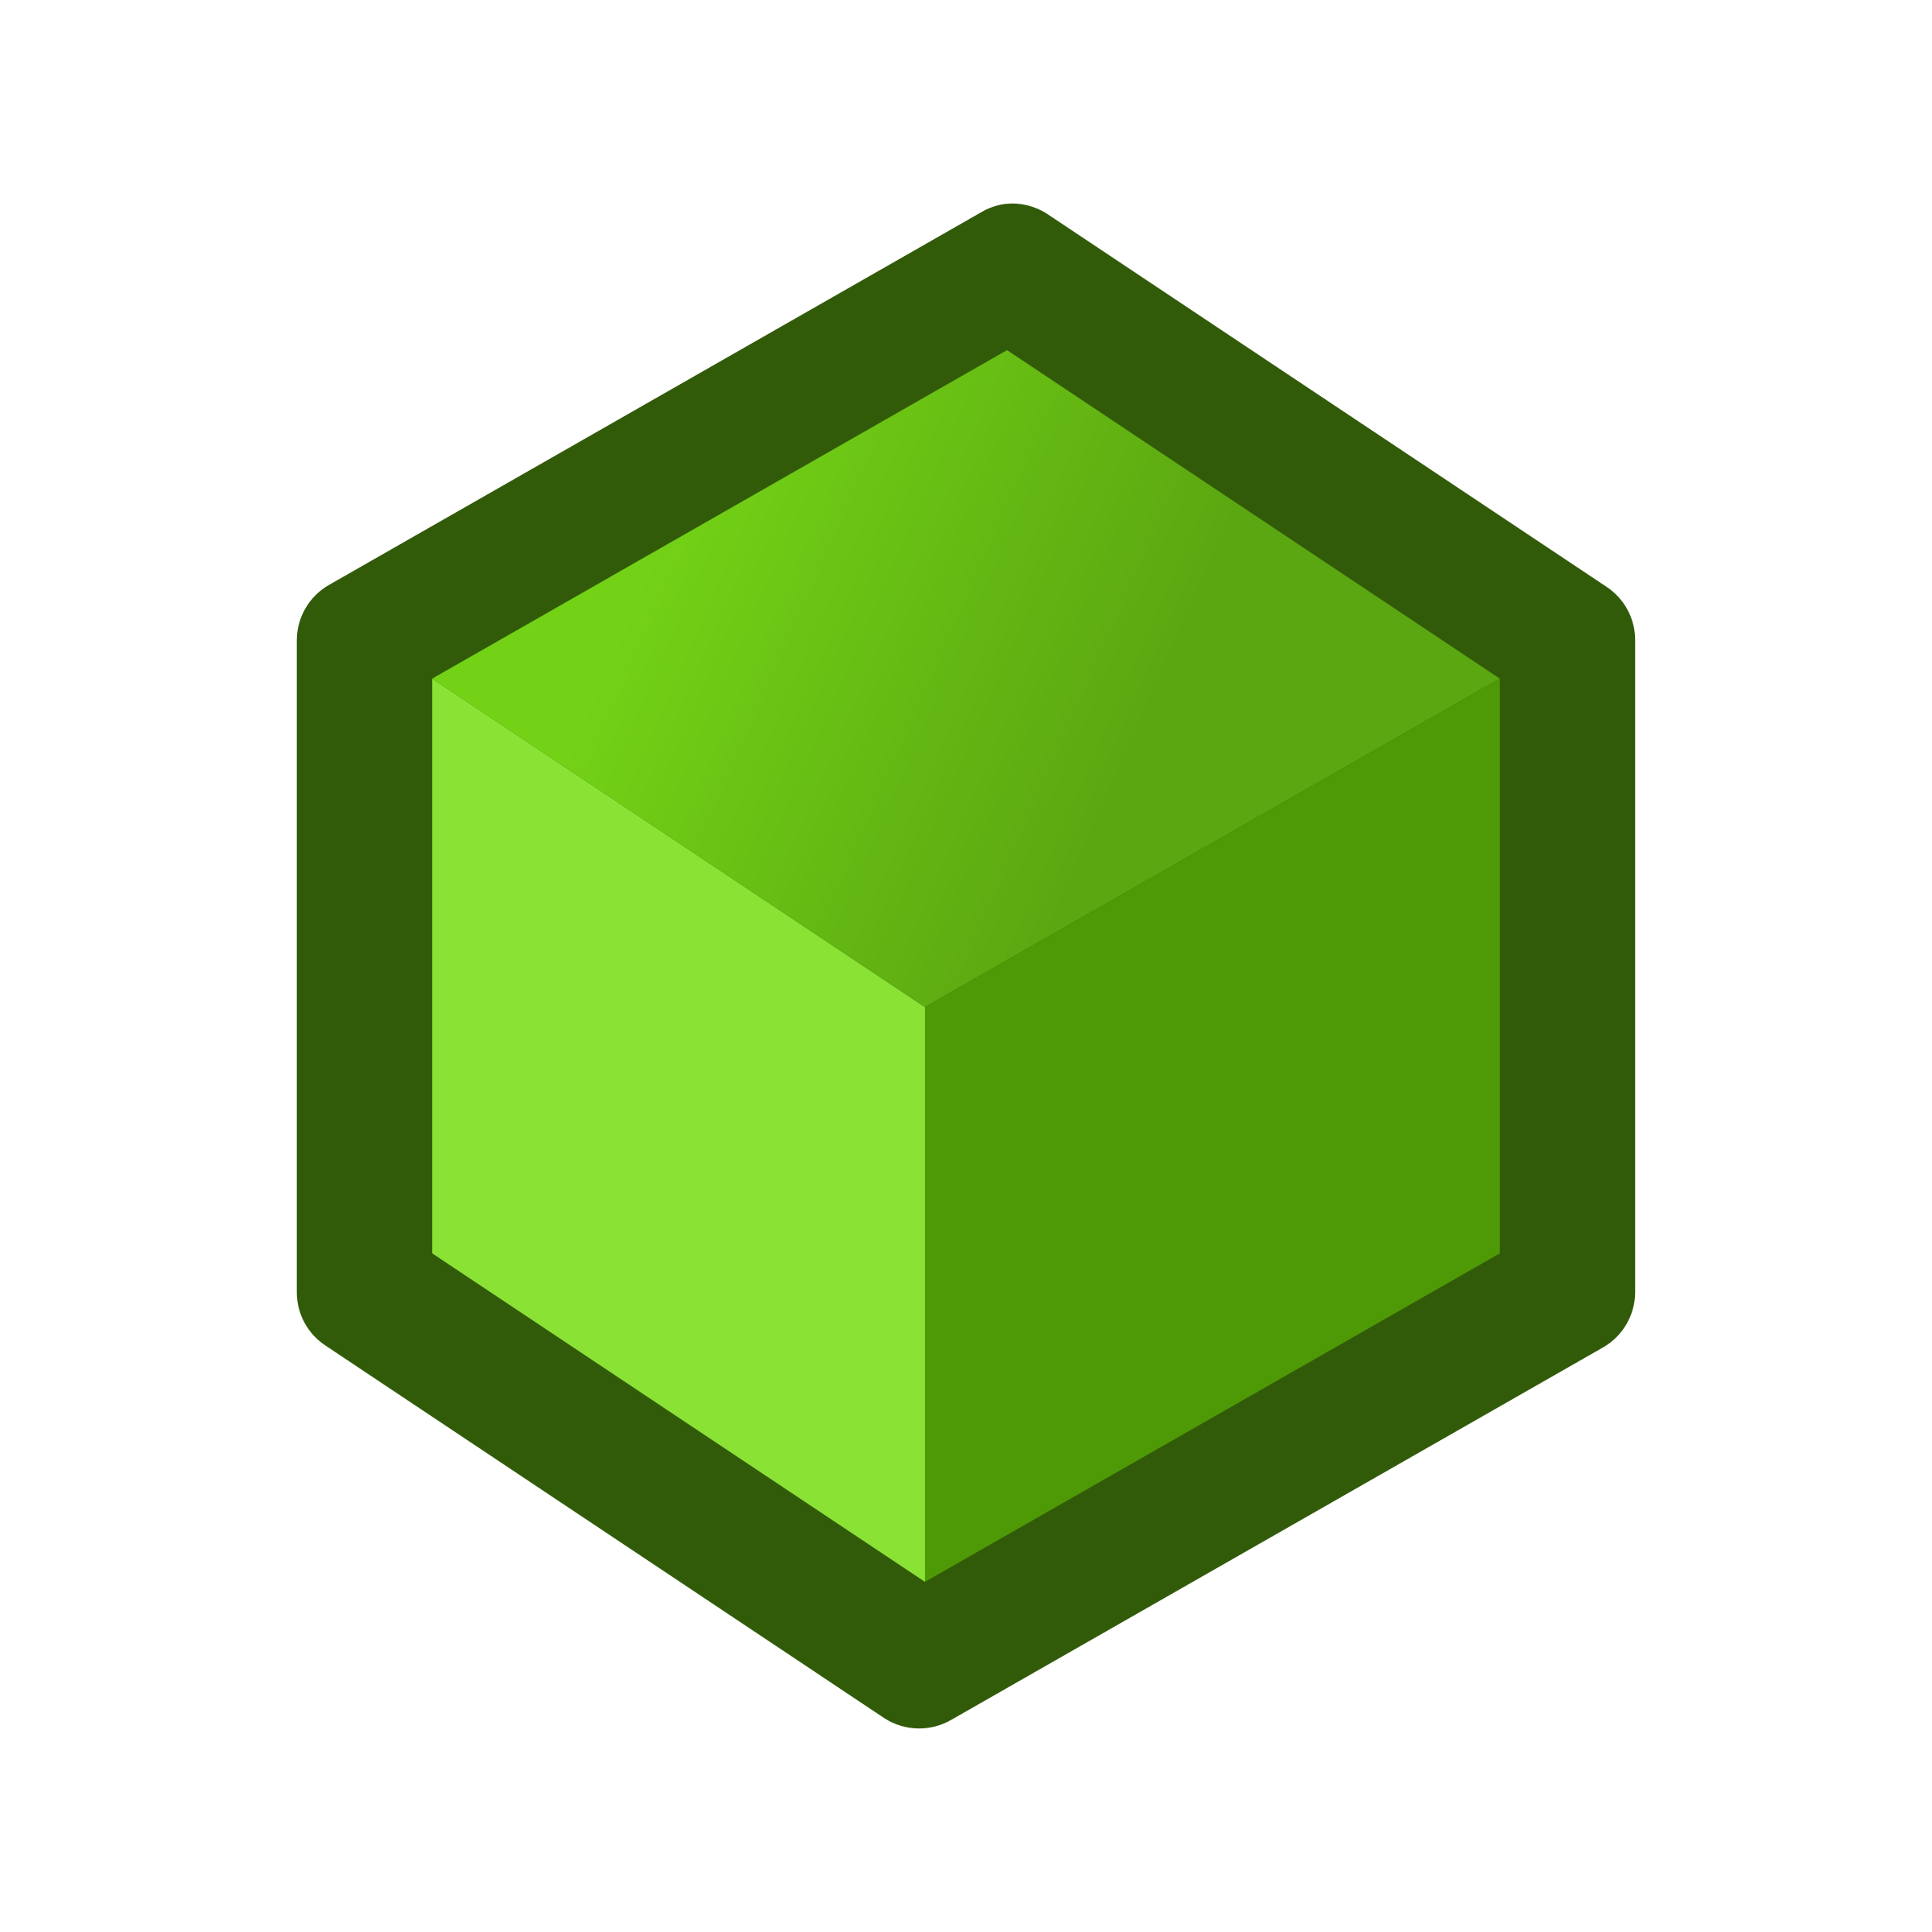 Green cube png. Icon icons free and